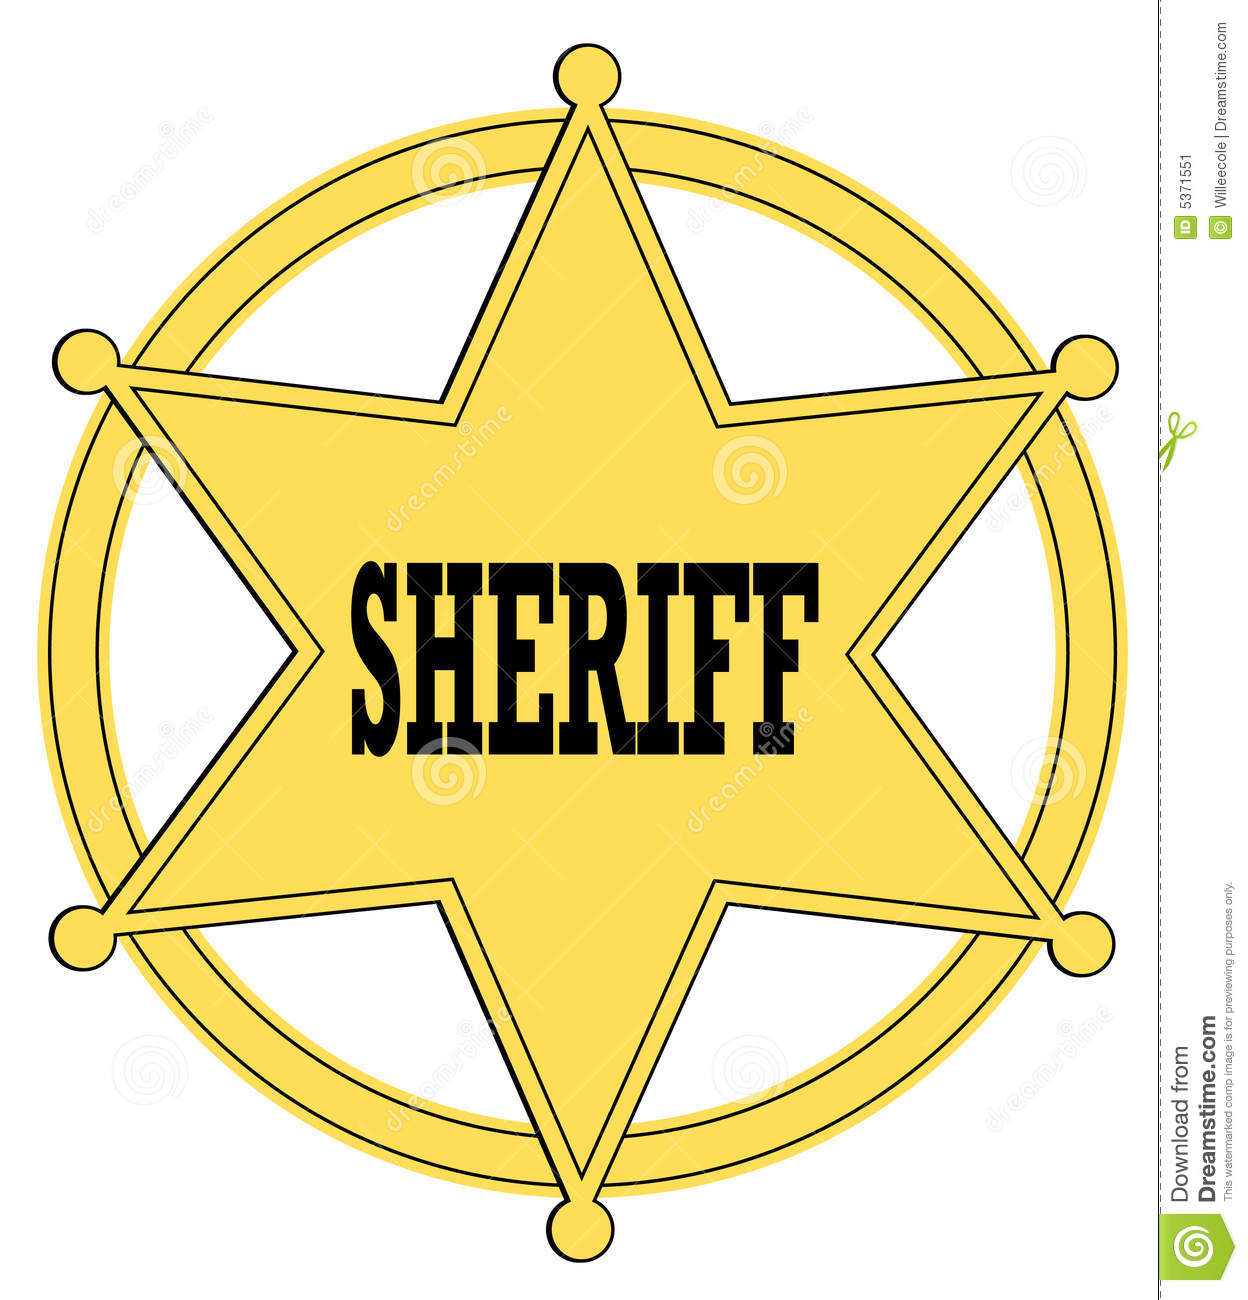 sheriff badge stock vector illustration of illustration 5371551 rh dreamstime com sheriff's badge clip art sheriff badge clipart black and white